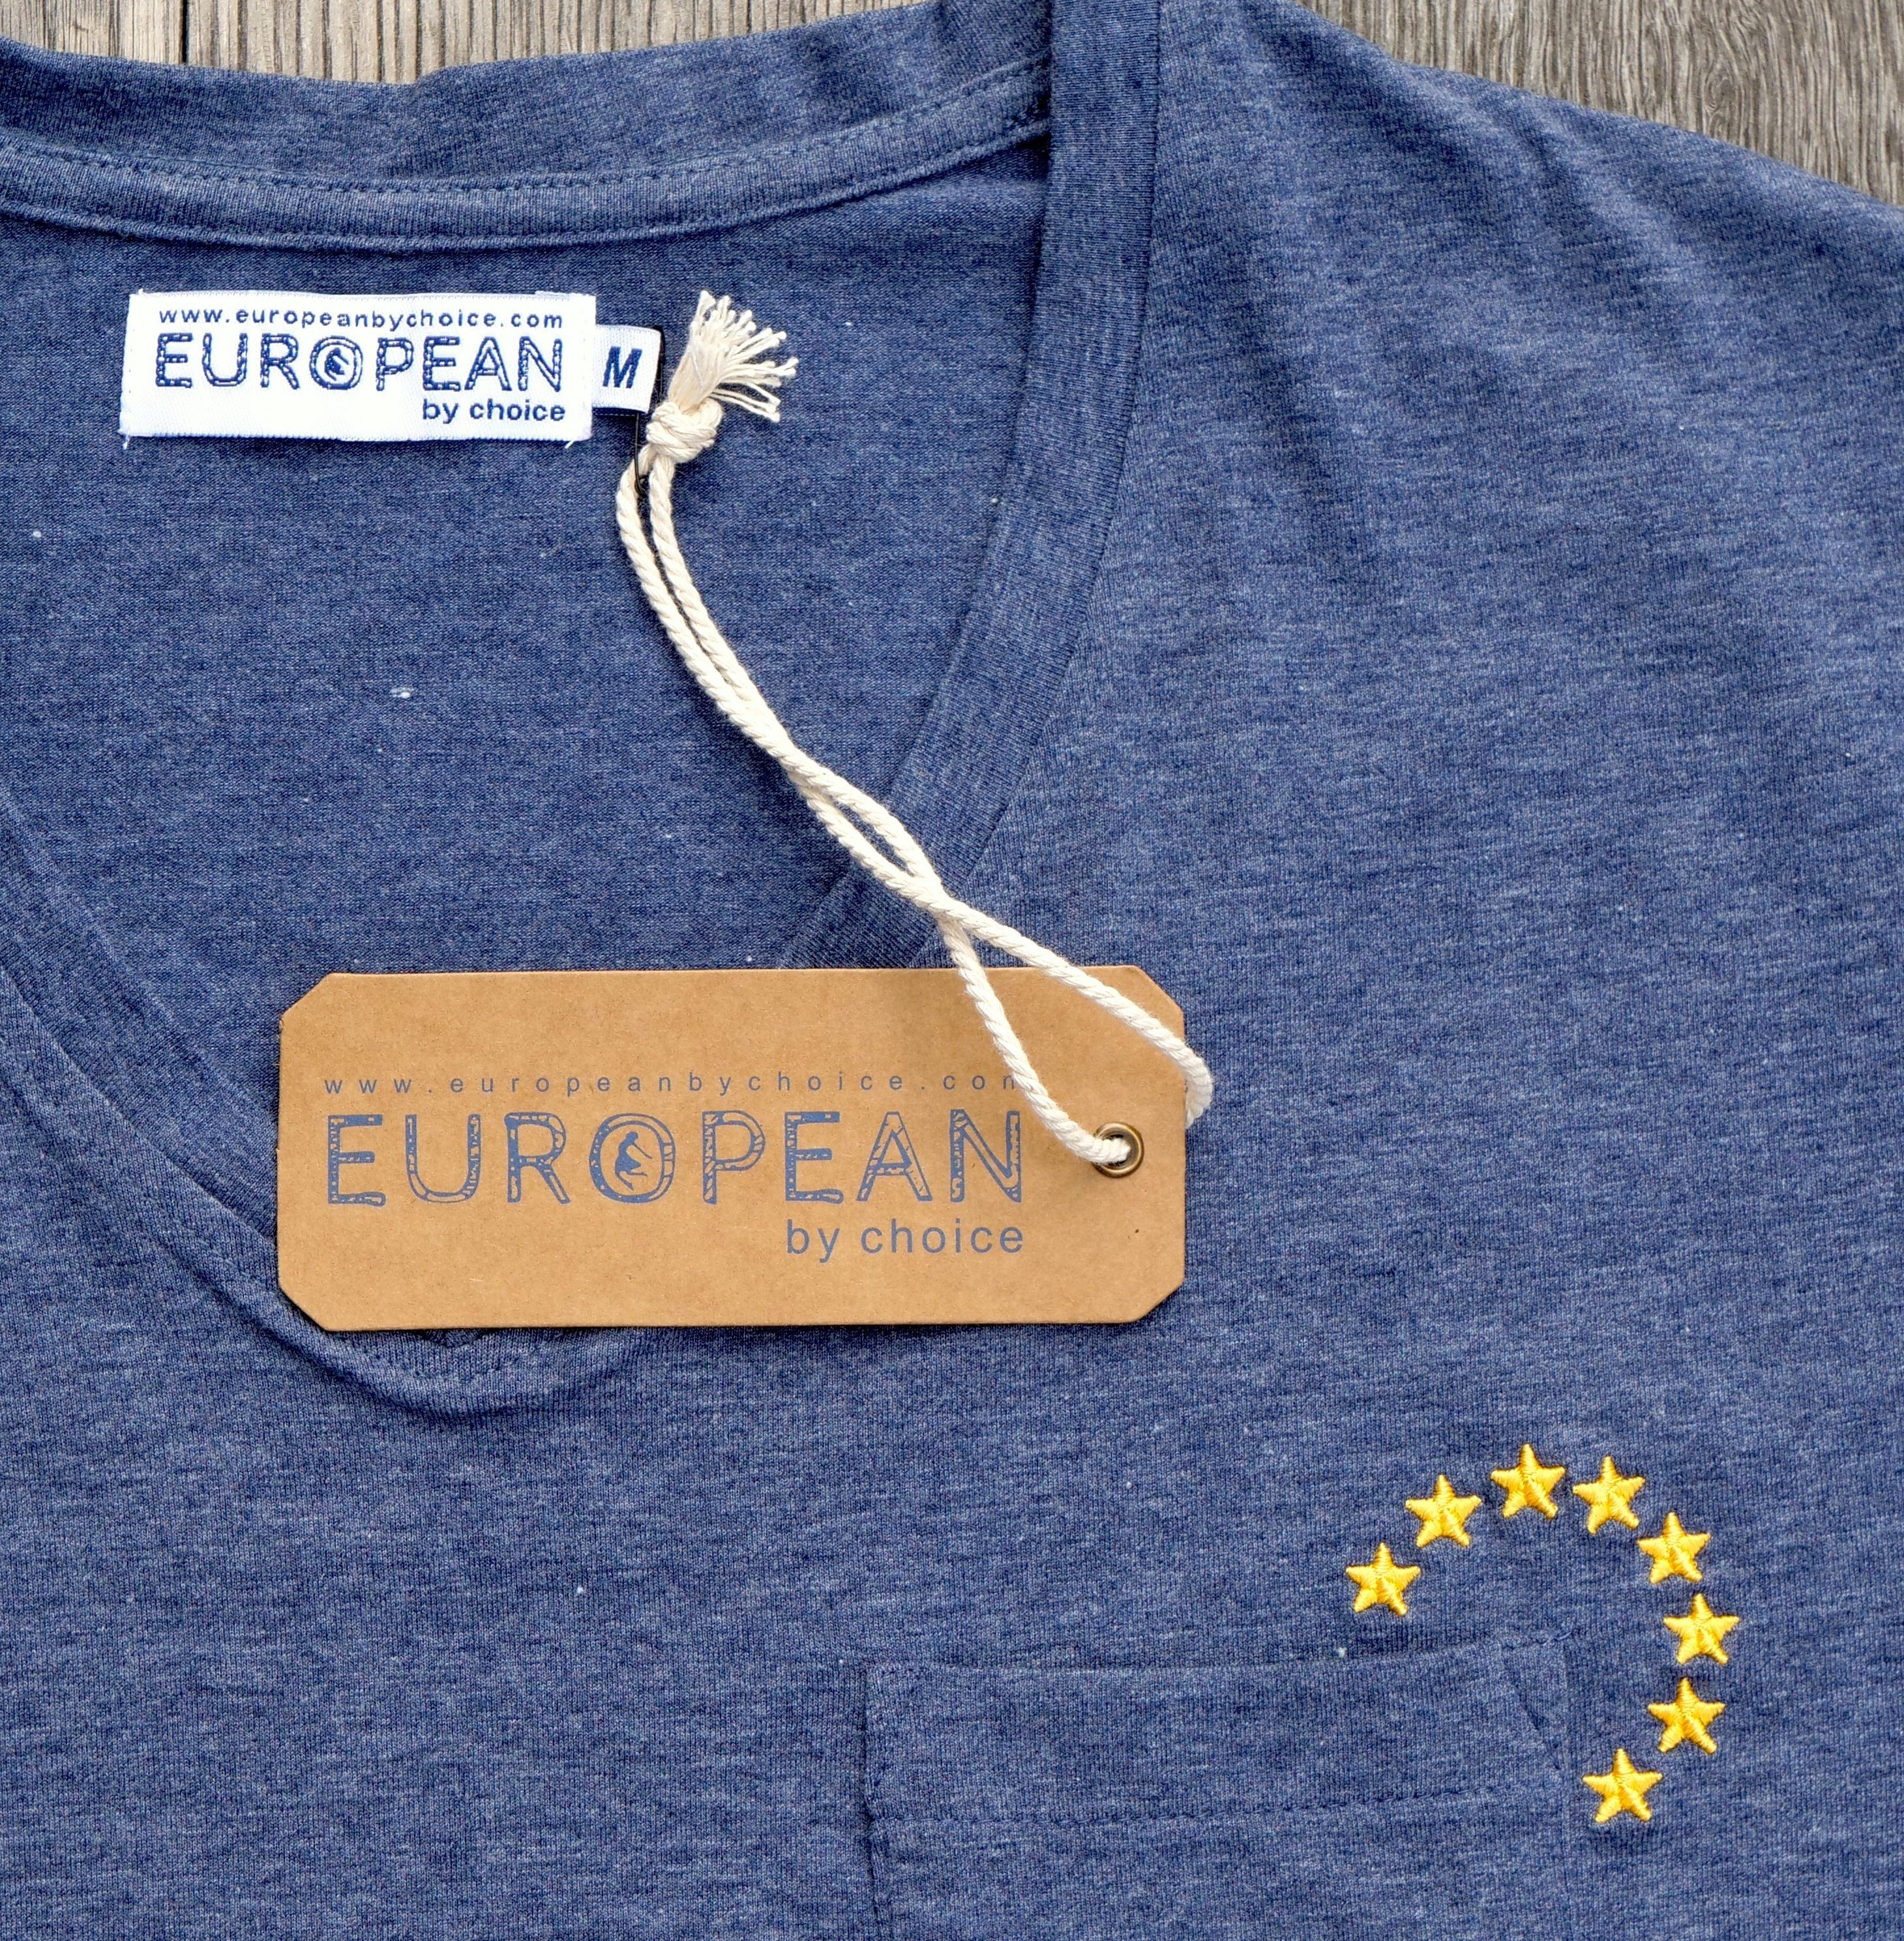 EUROPEAN T-Shirt with small stars pocketstars embroidered next to pocket UNISEX close up of stars and hangtag with neck lable label from the front with hang #europeanbychoice hangtag and neck label attached to shirt portrayed on wooden background